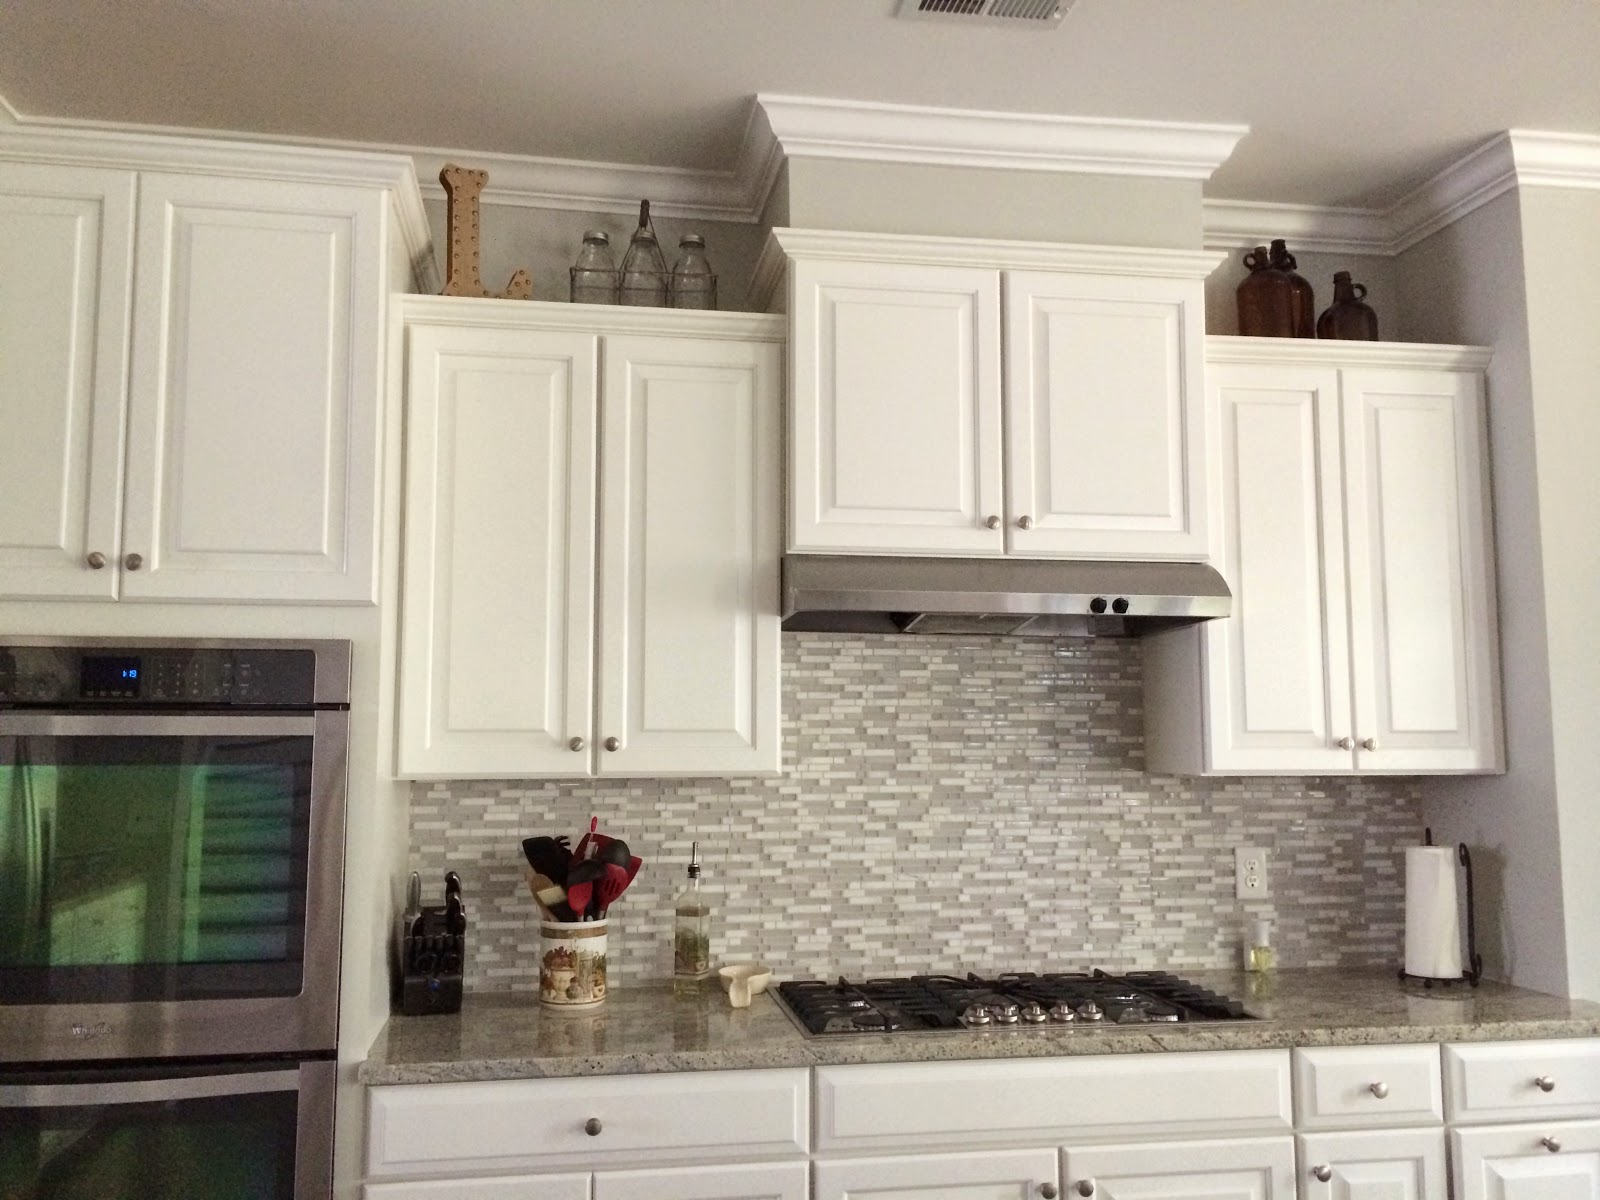 Decorating Above Kitchen Cabinets Decorating Above Kitchen Cabinets Laforce Be With You